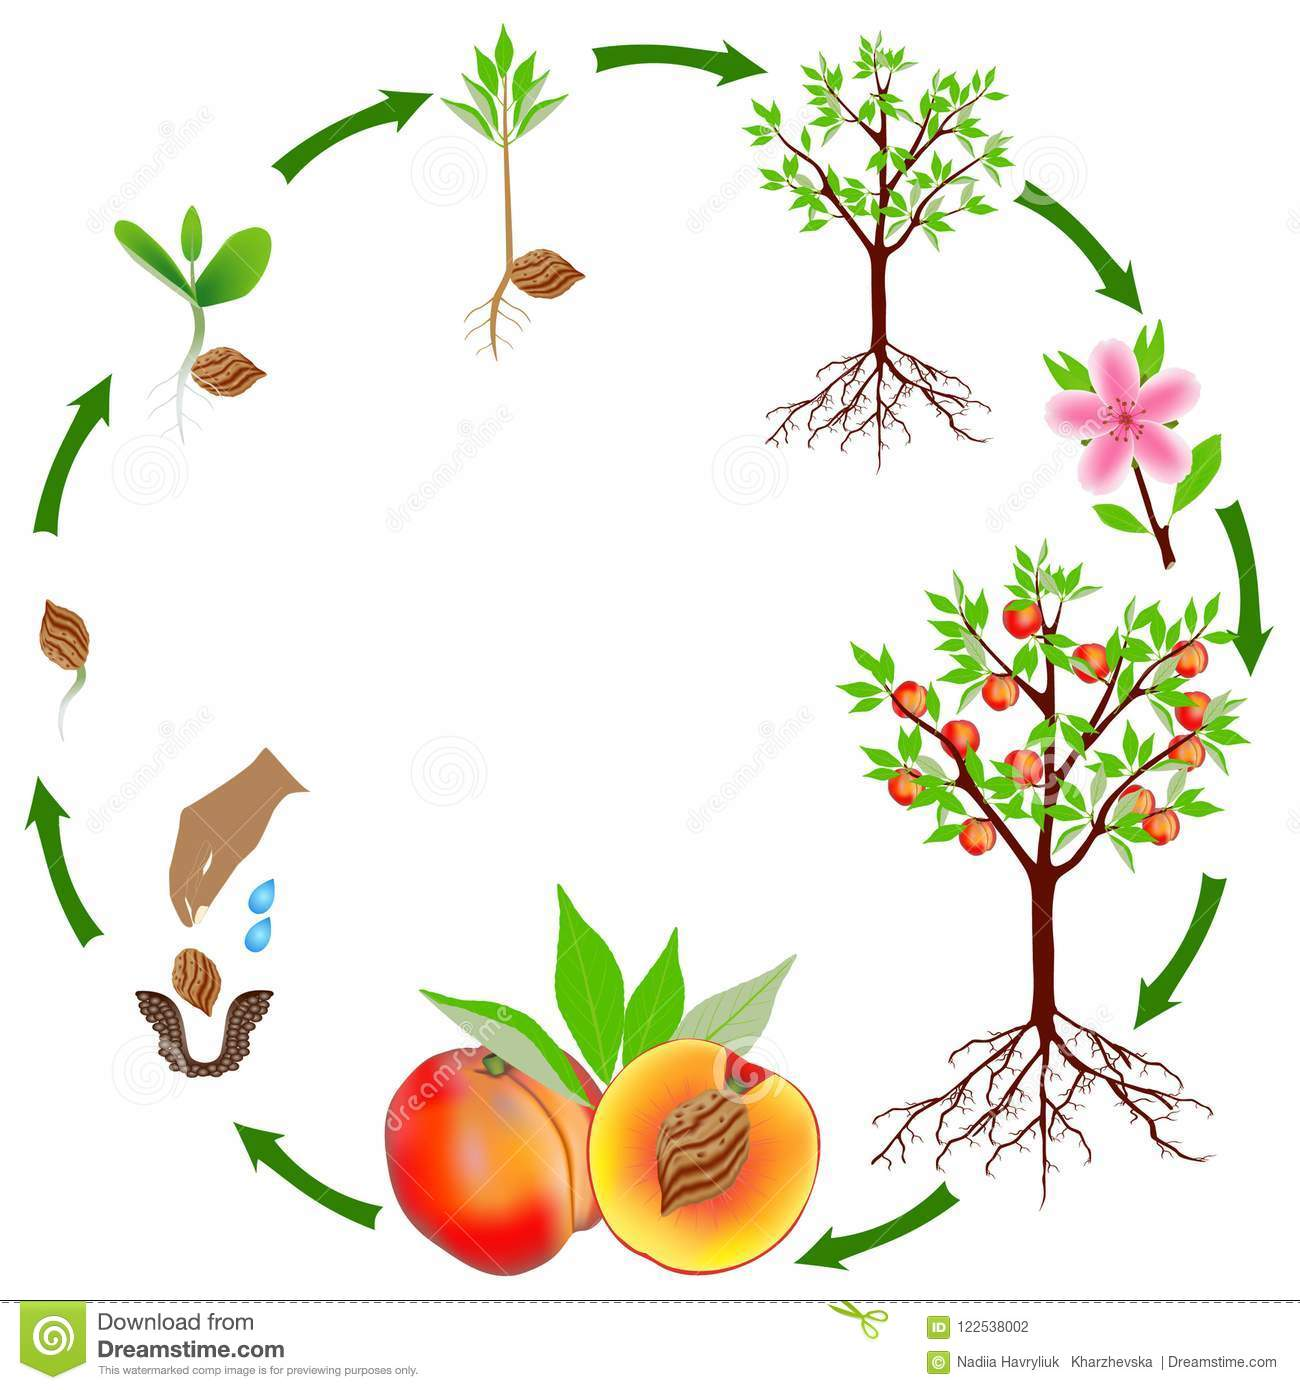 Life Cycle Of A Peach Plant On A White Background  Stock